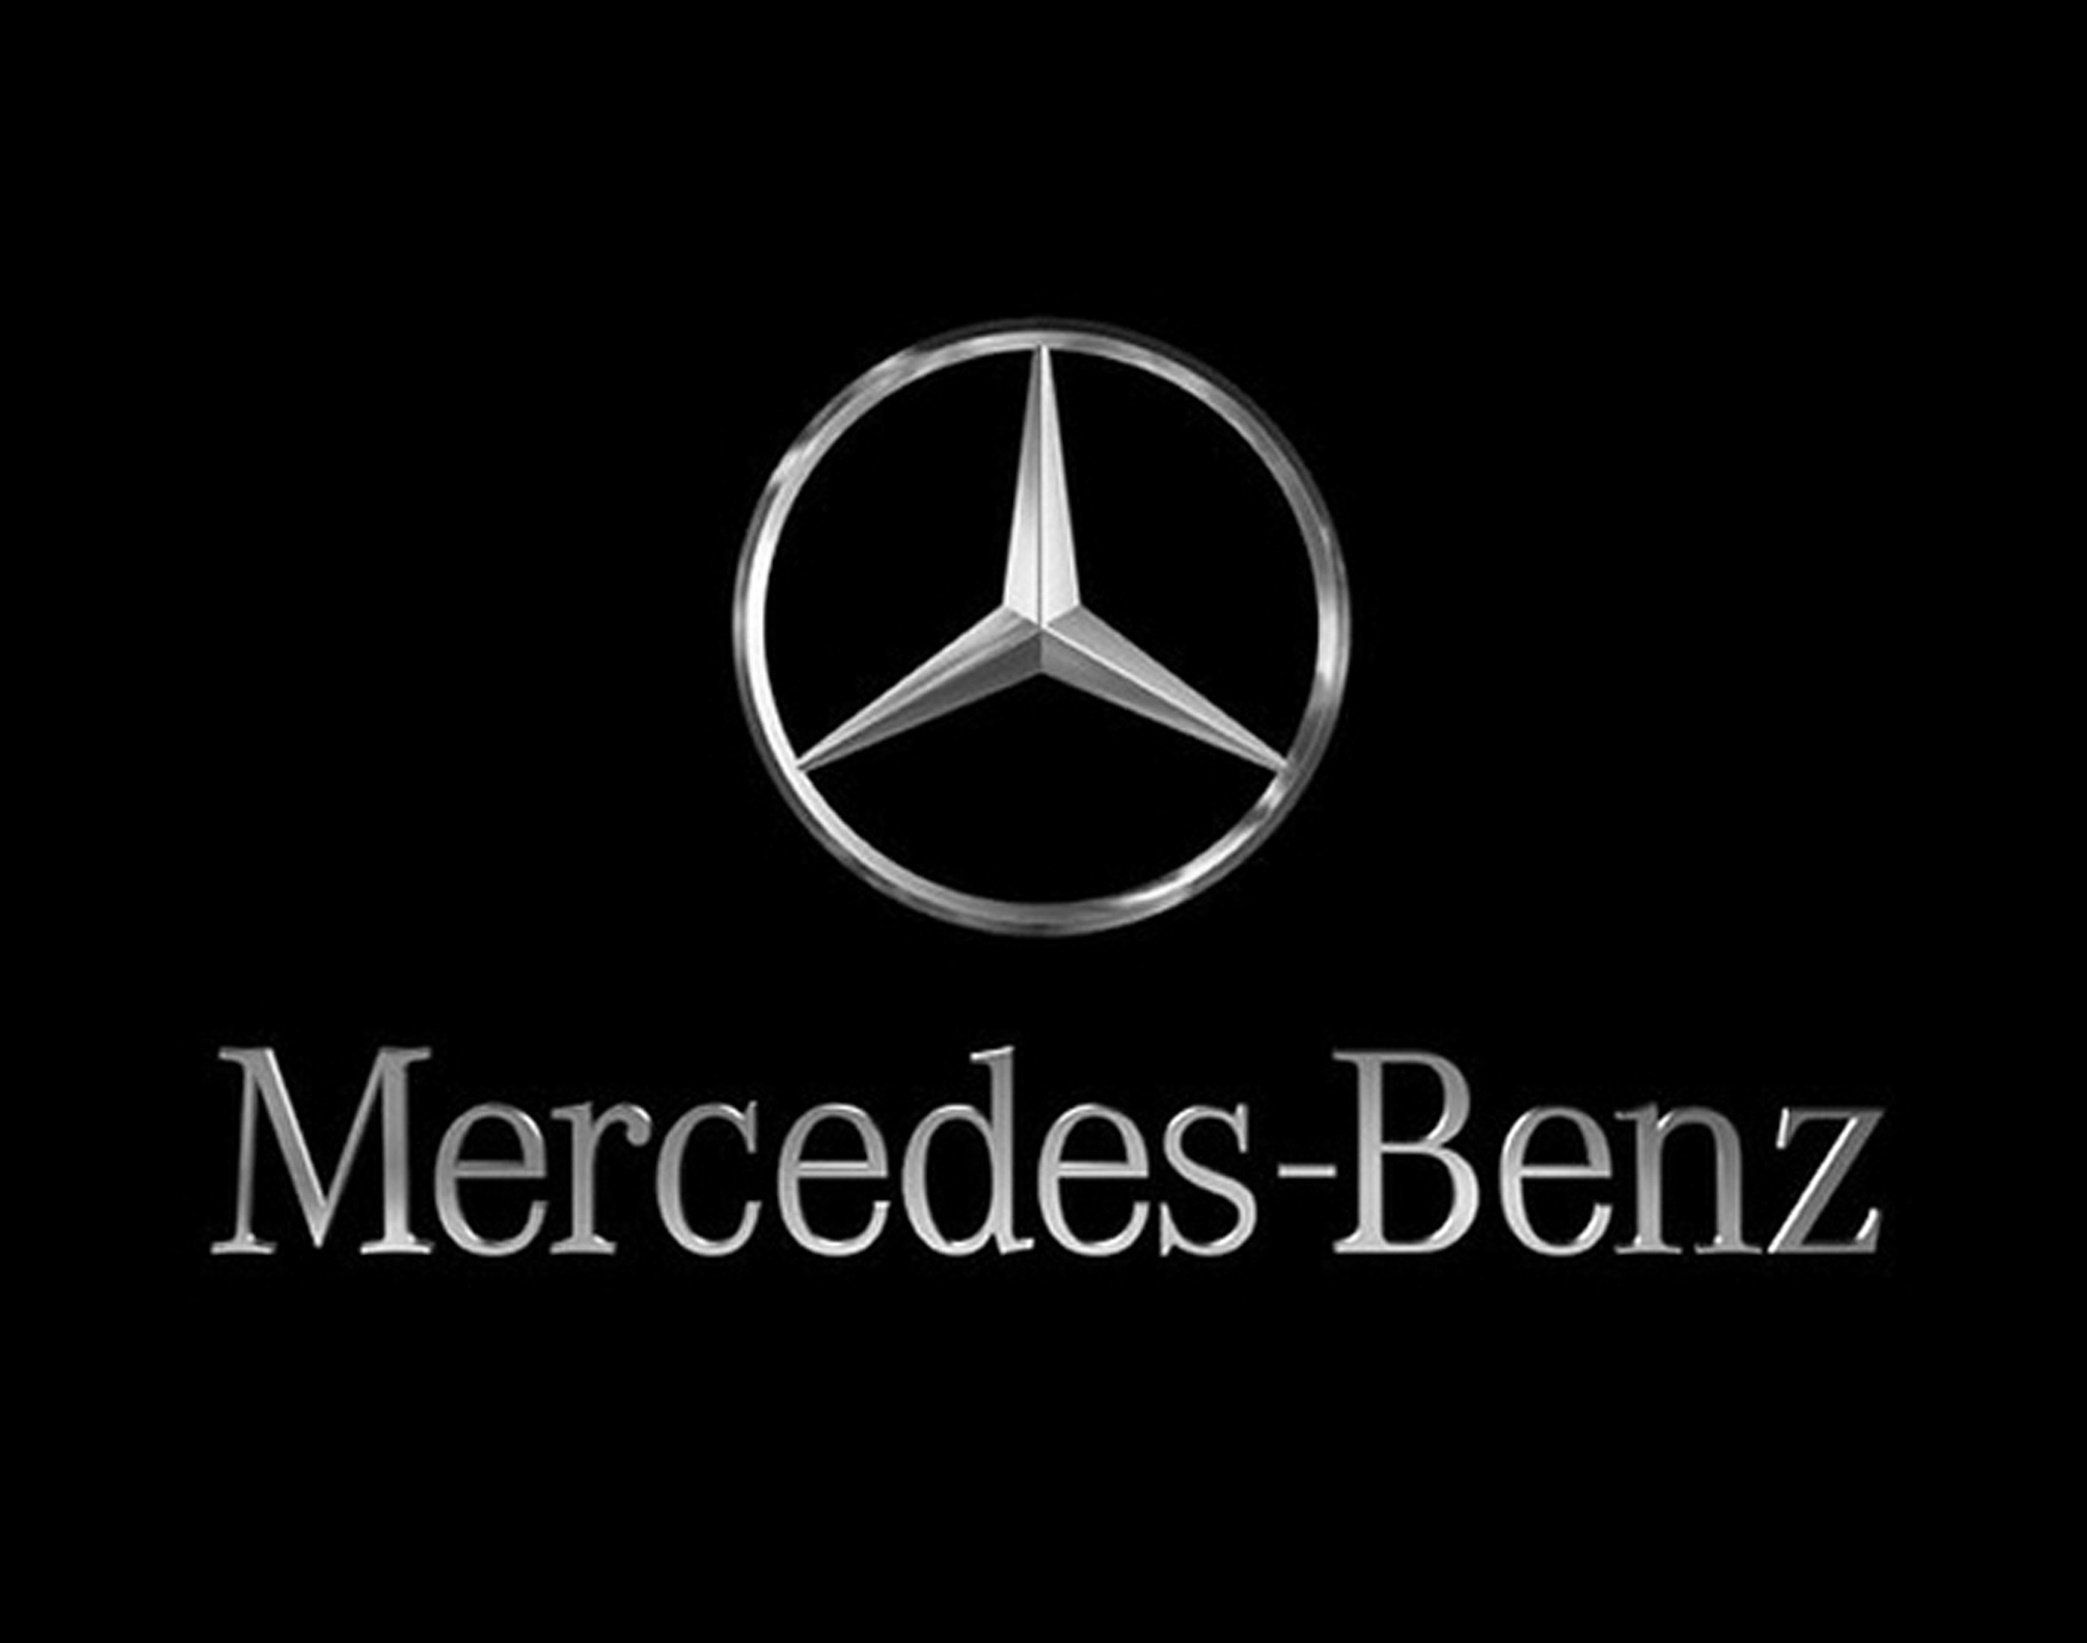 50-year Mercedes-Benz Company Poster Print